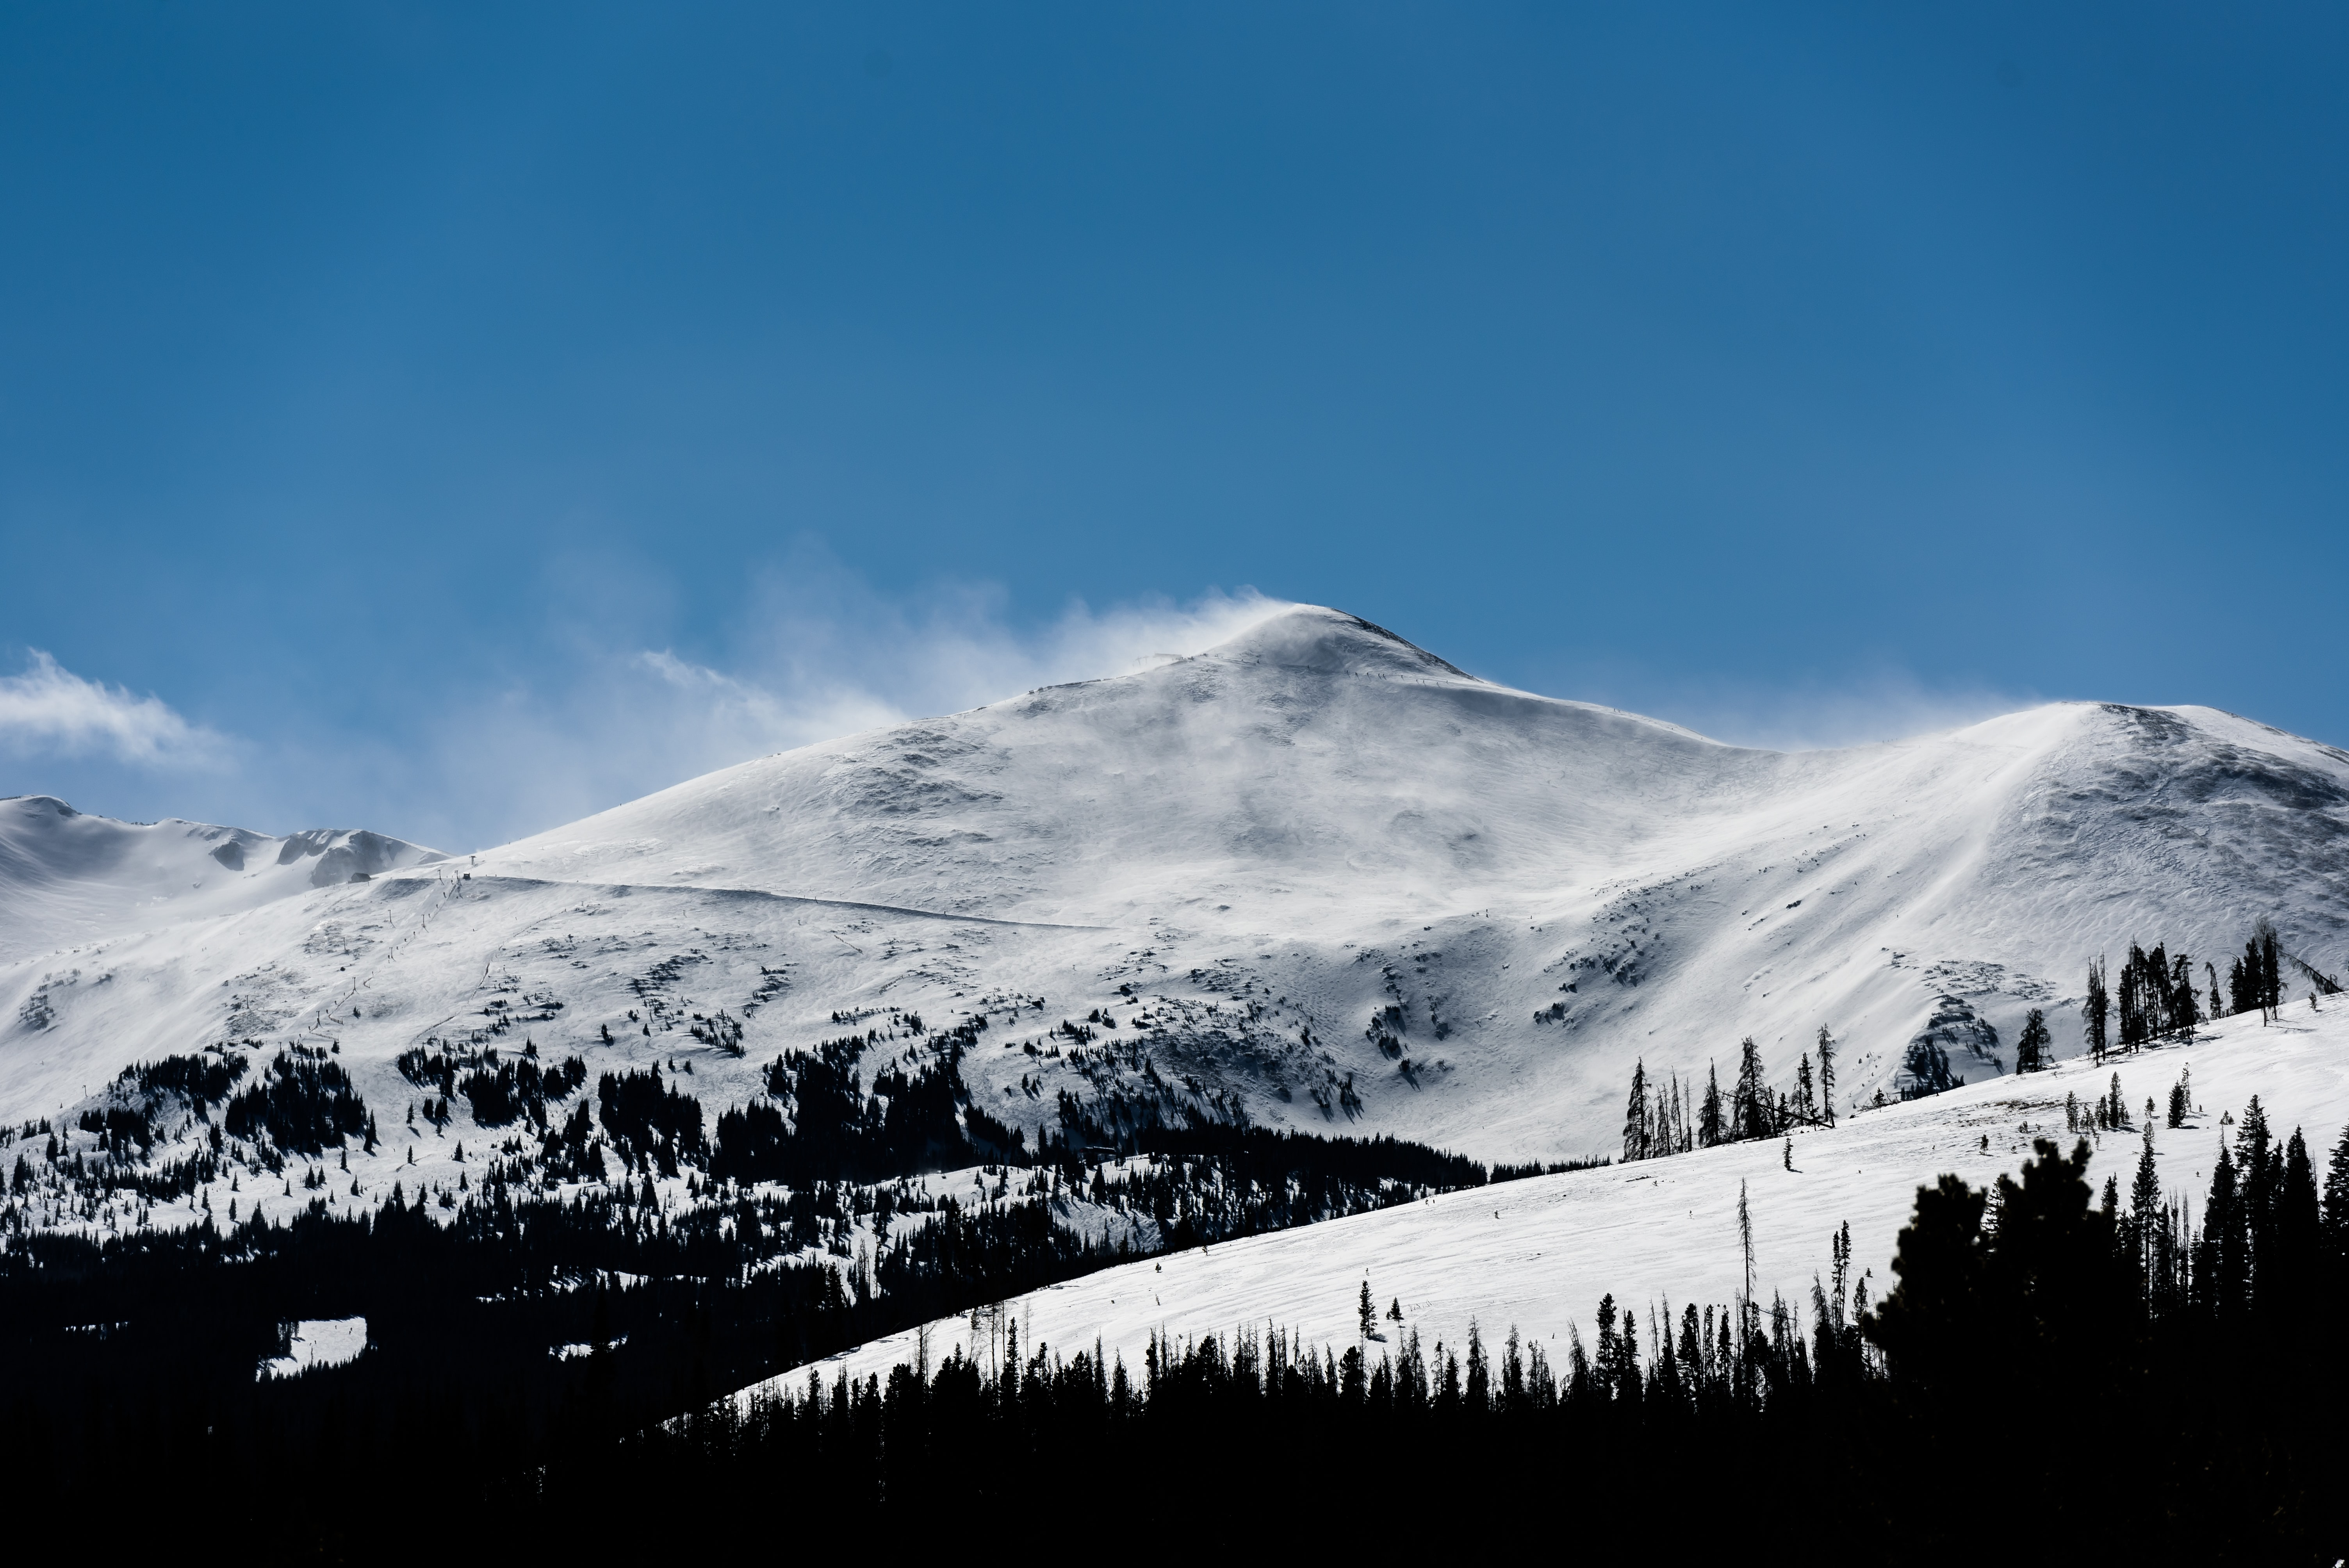 Wind blowing snow off a mountain ridge